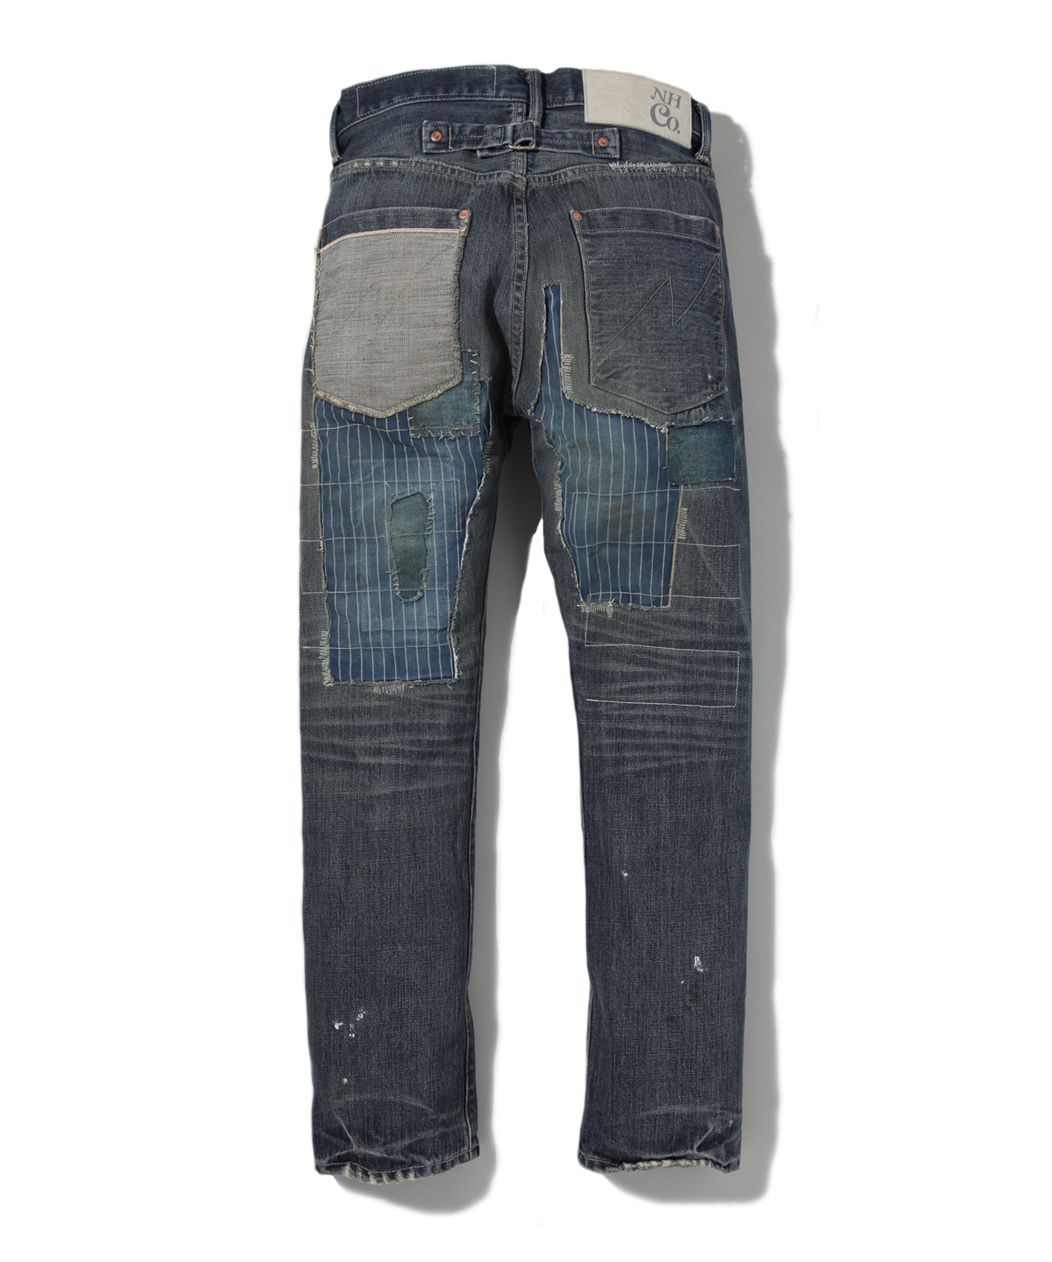 a8793ba4 MINER . SAVAGE . DEEP MID / 14OZ-PT NEIGHBORHOOD TECHNICAL APPAREL ...